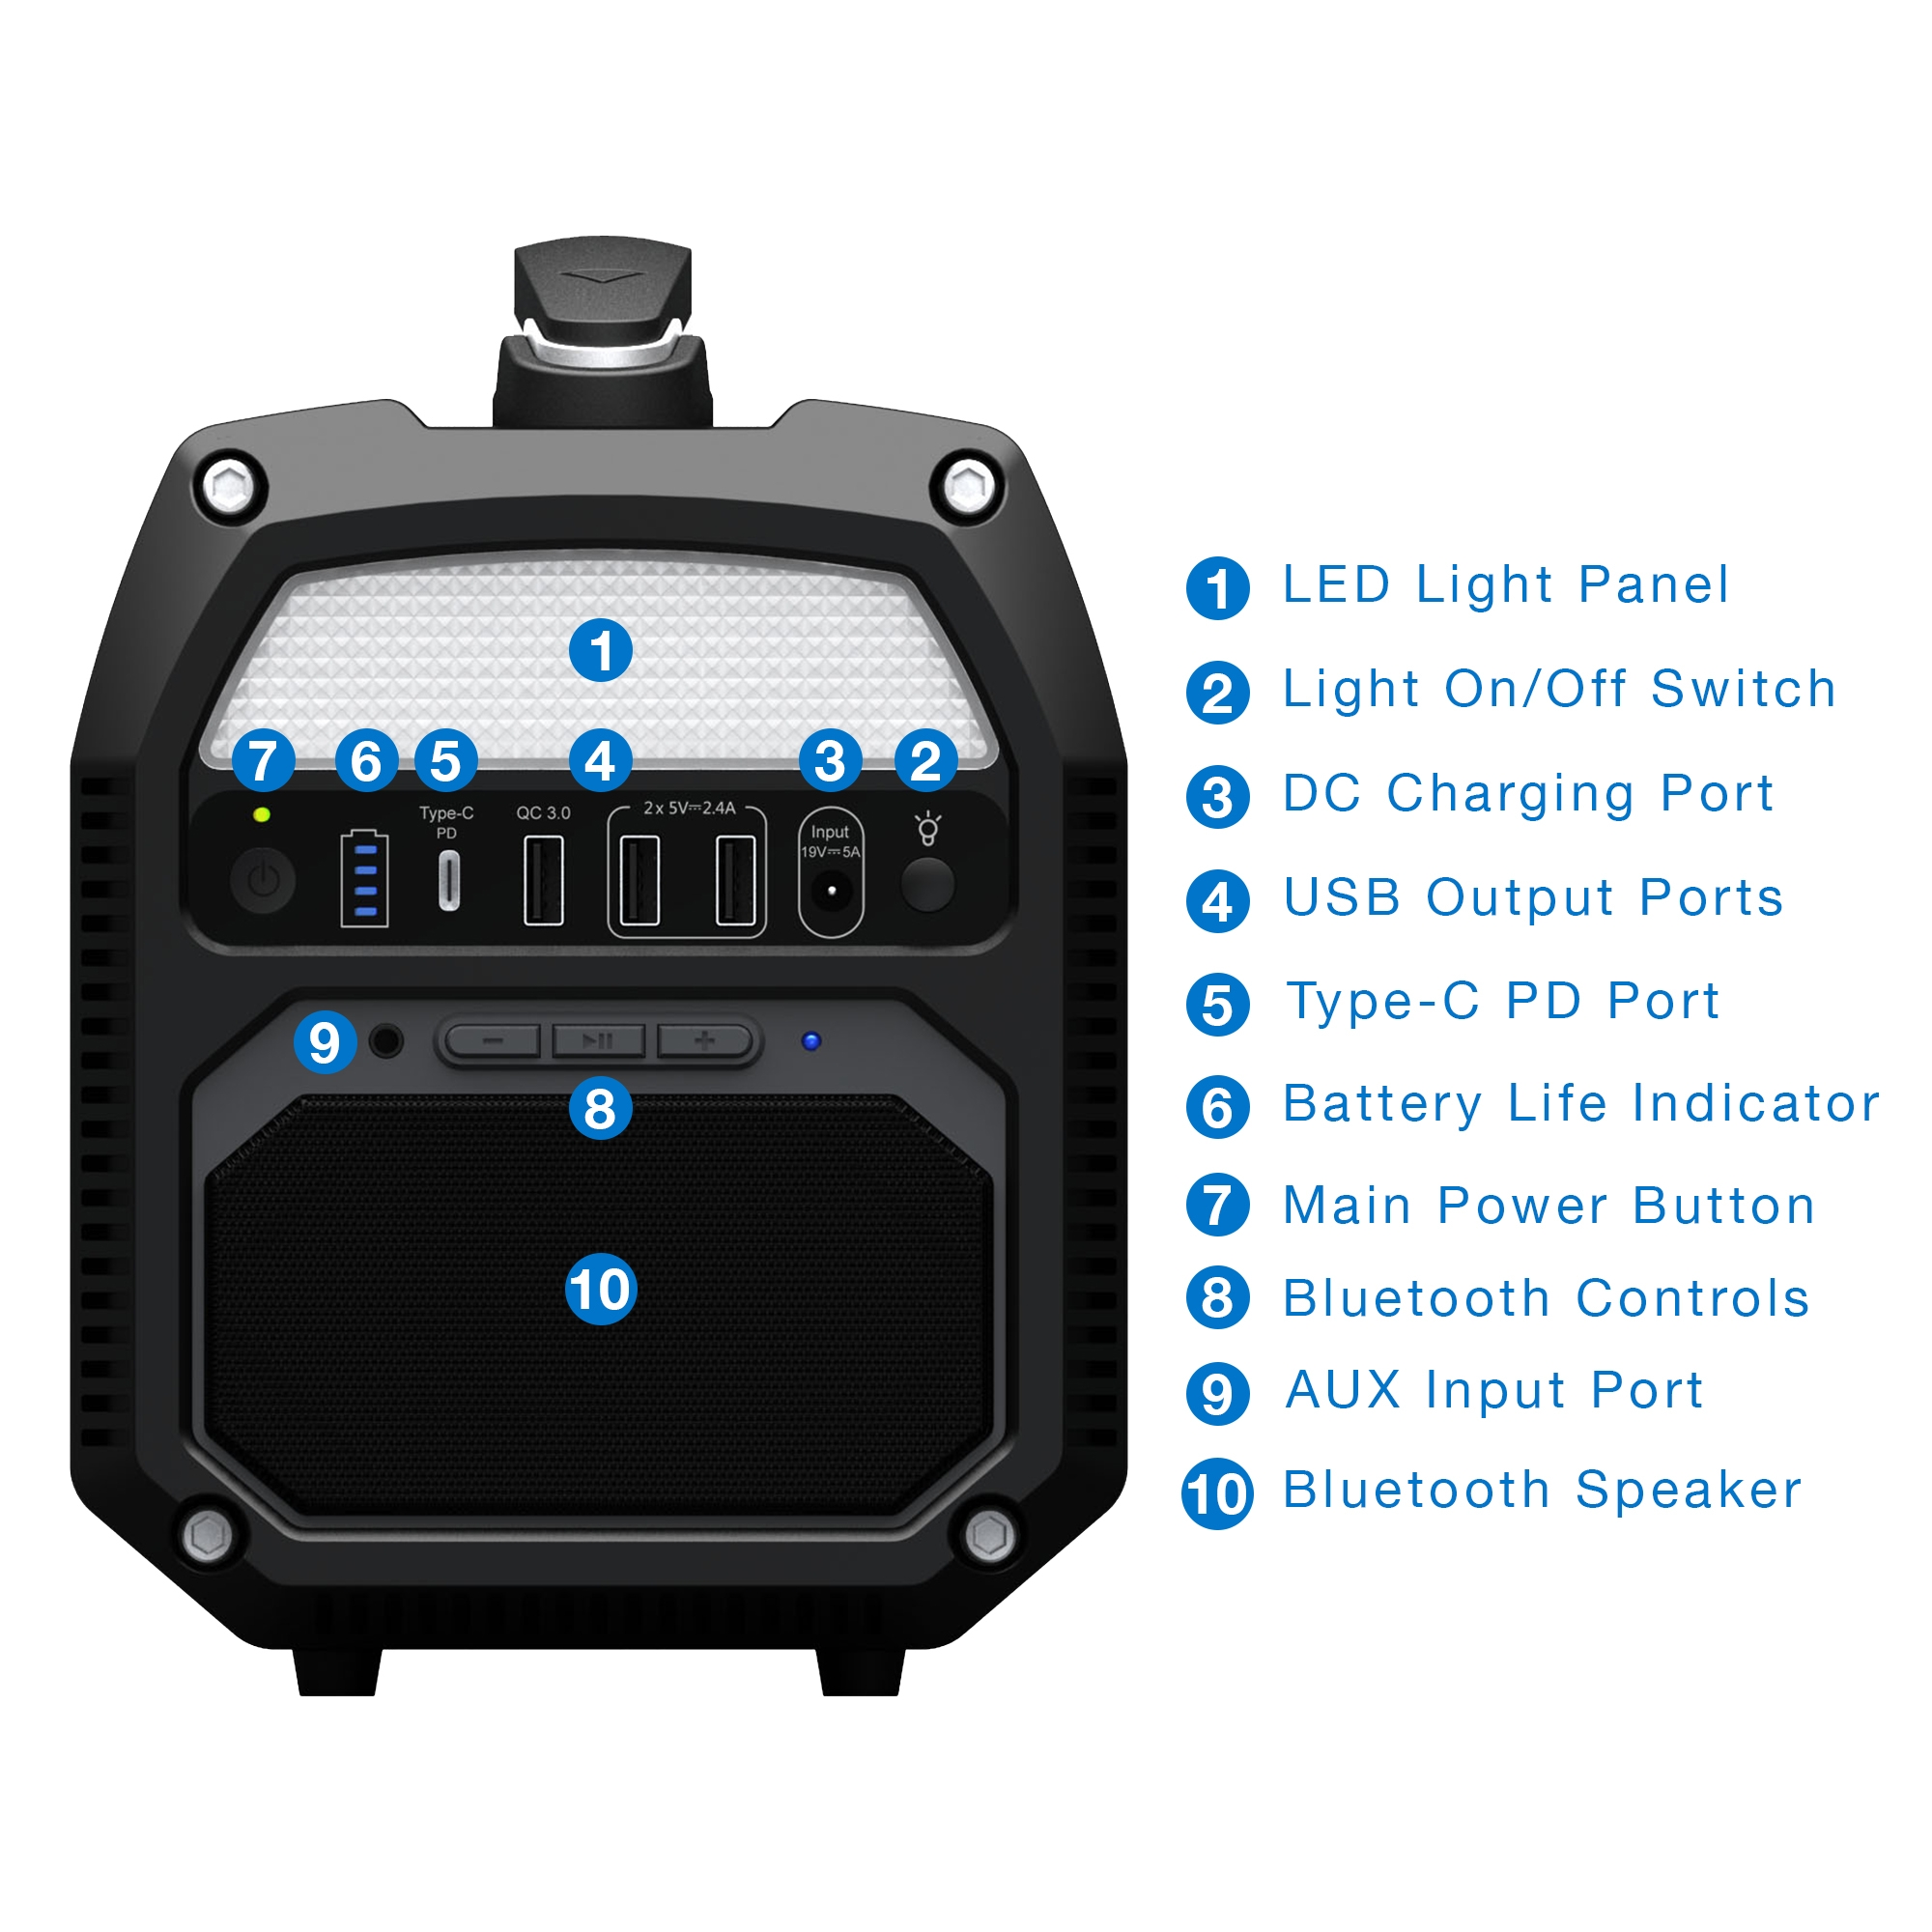 Portable Power Station Charges Multiple Devices Simultaneously